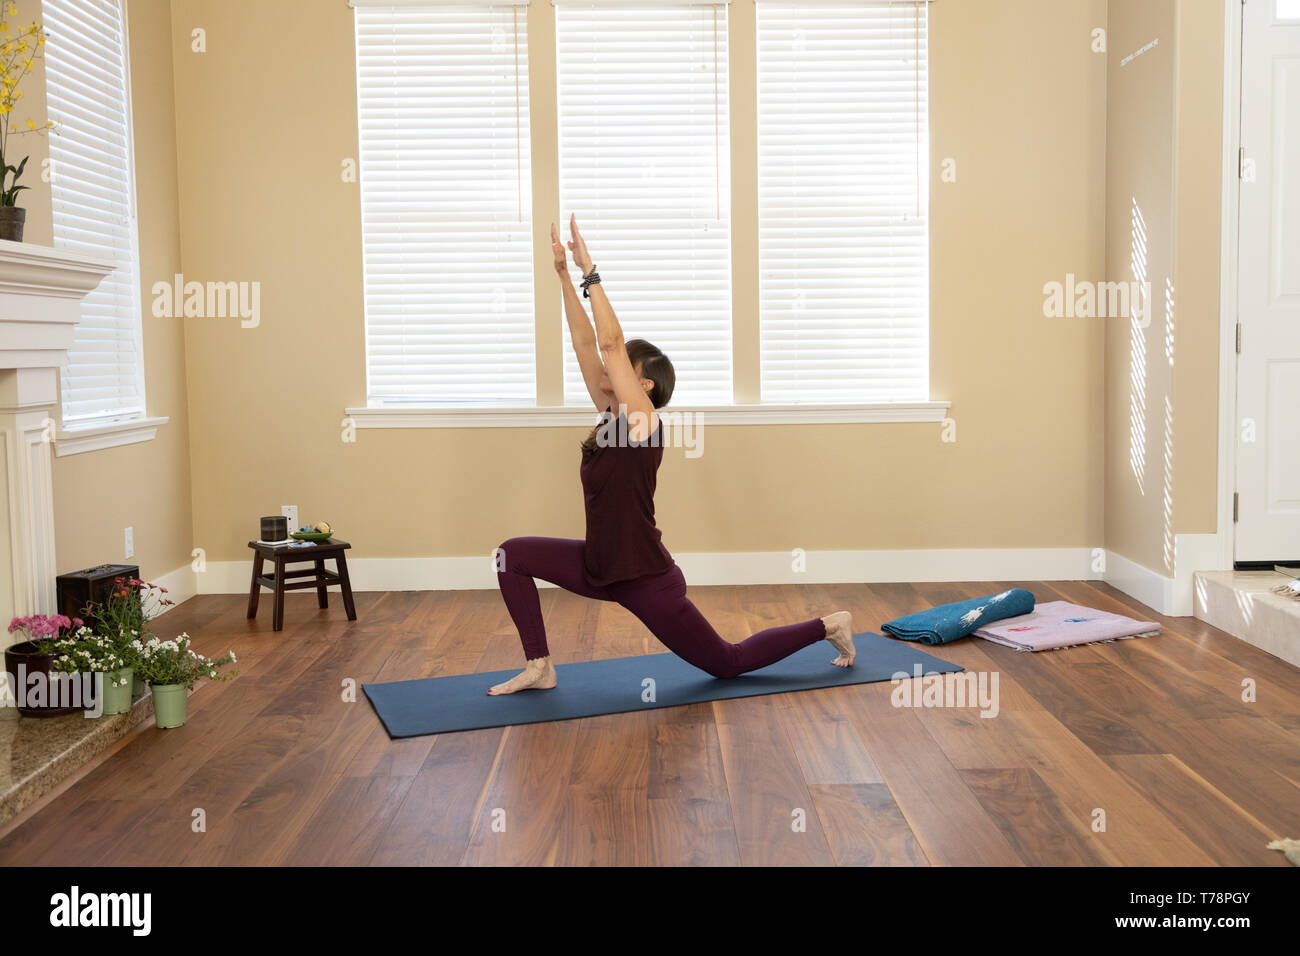 Yoga Low Lunge arms high - Stock Image